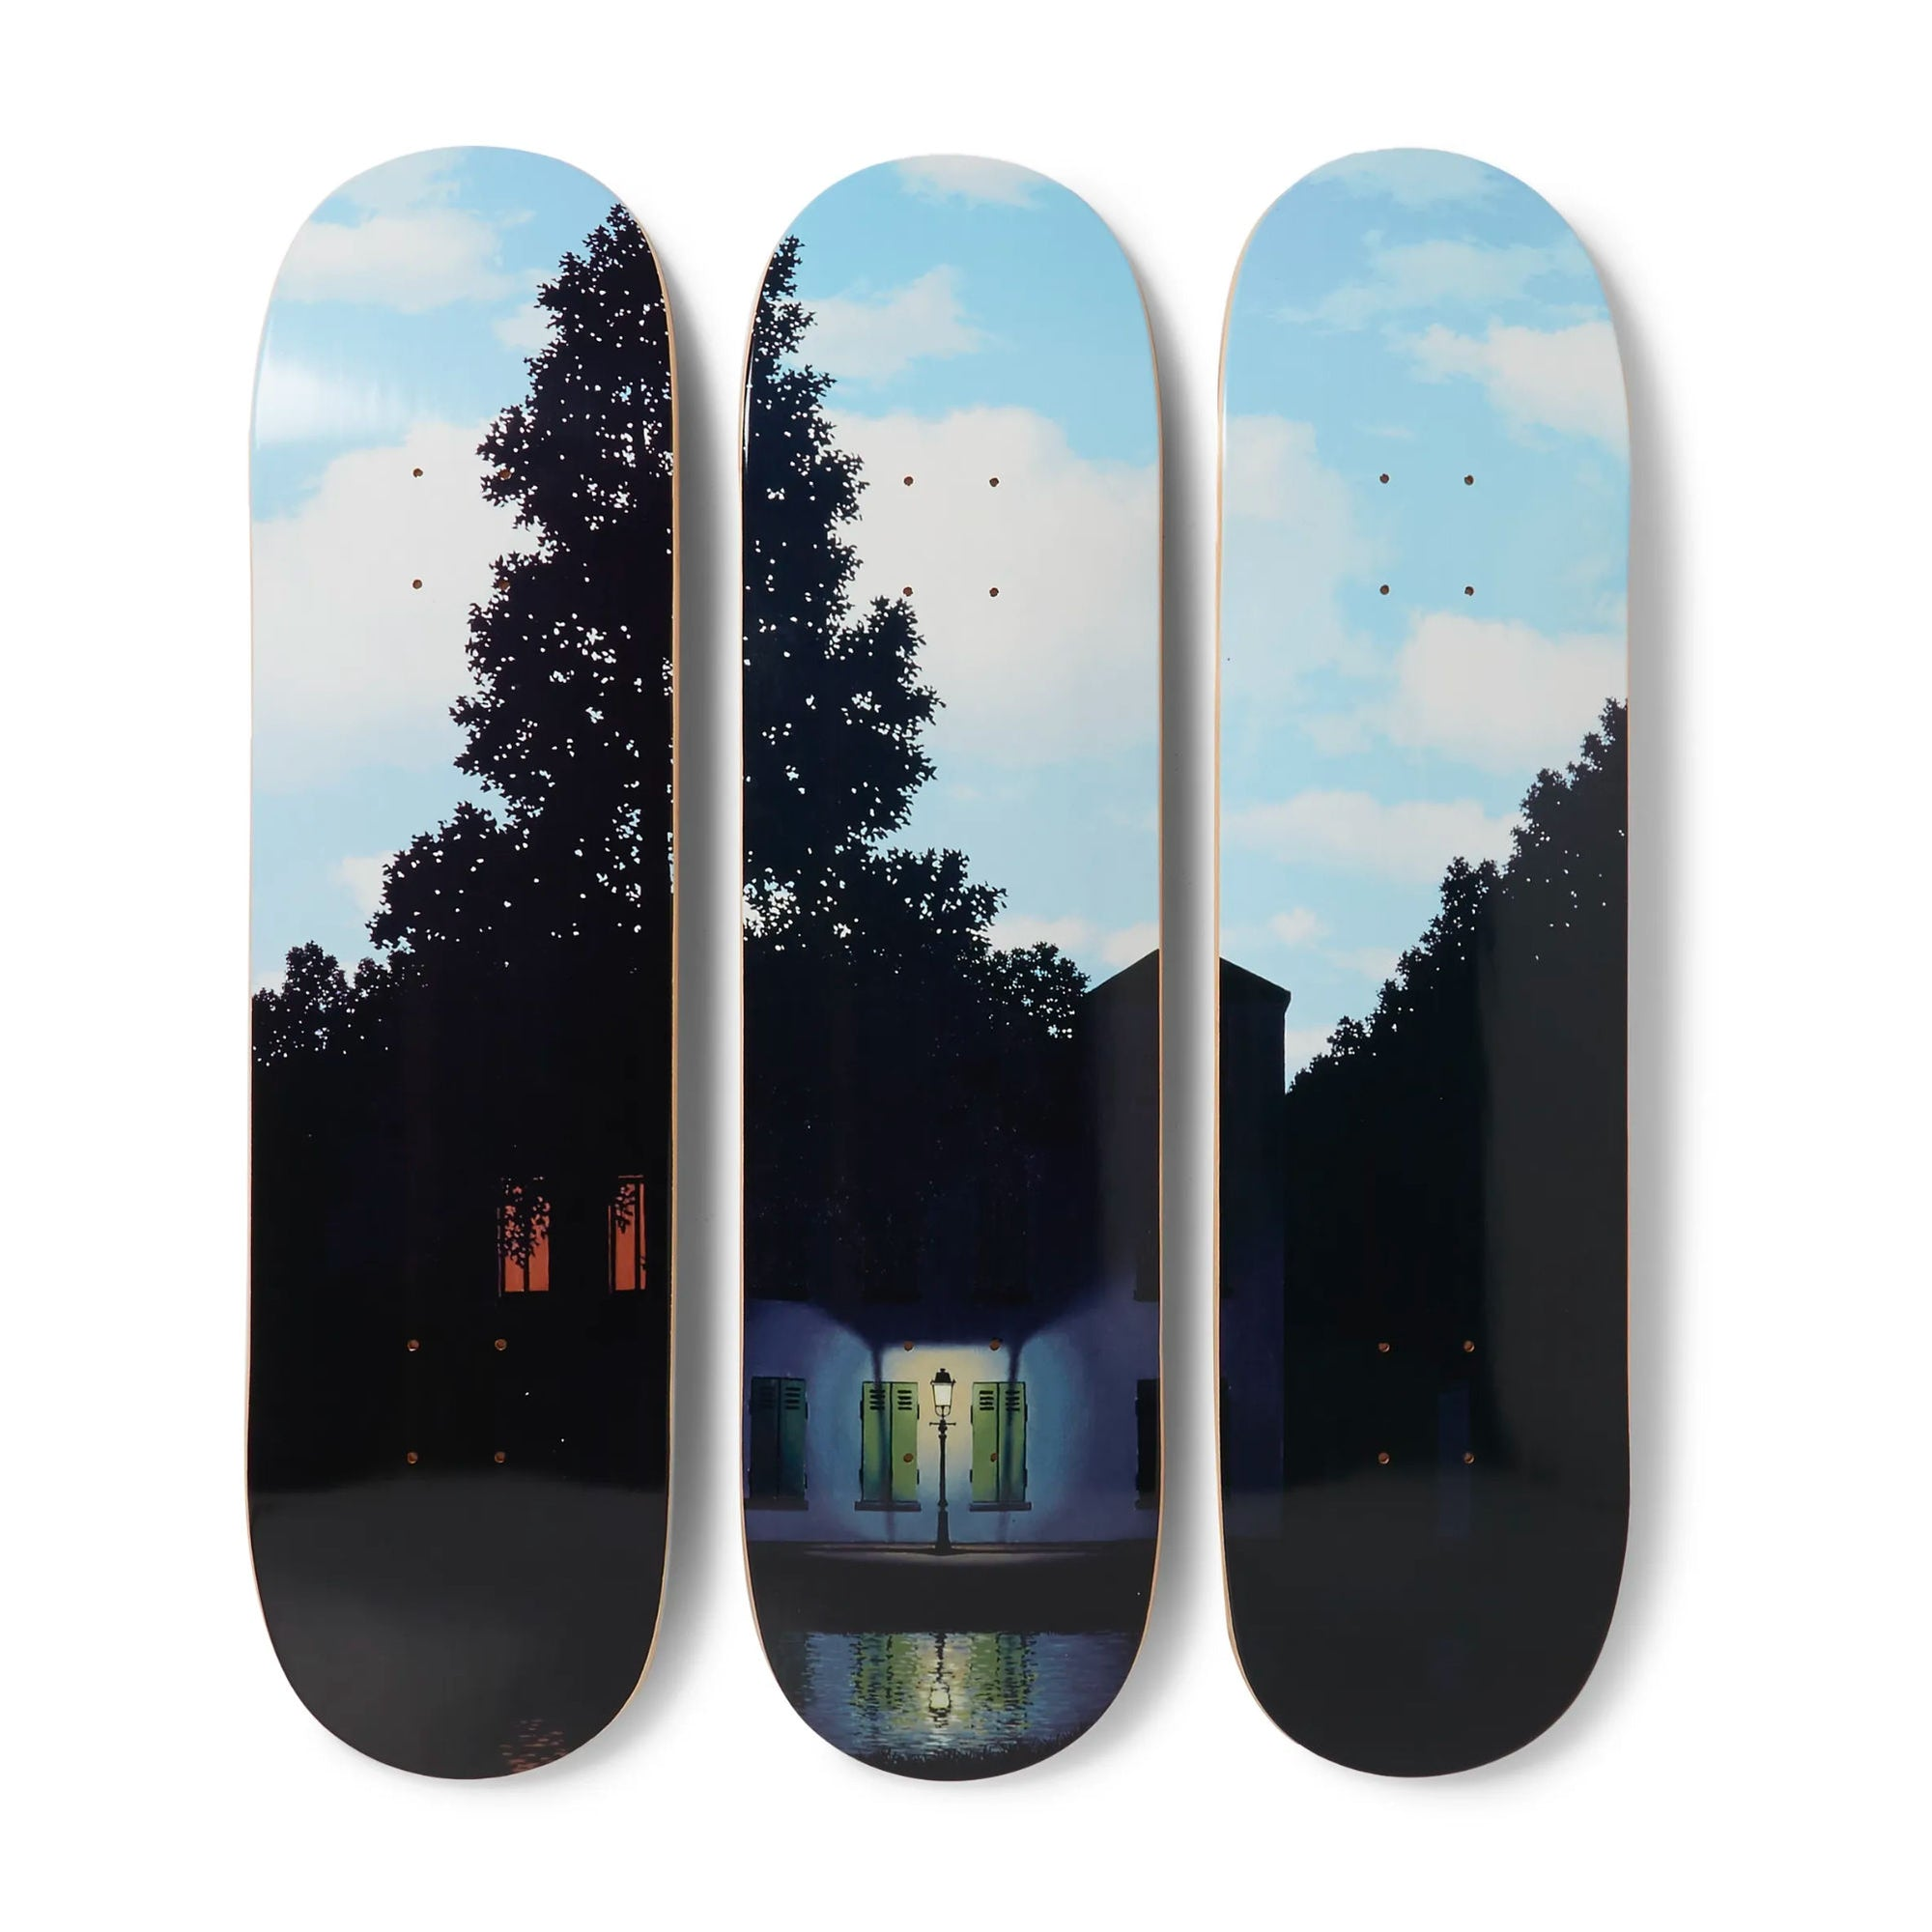 The Skateroom skateboard set, René Magritte L'Empire Des Lumières